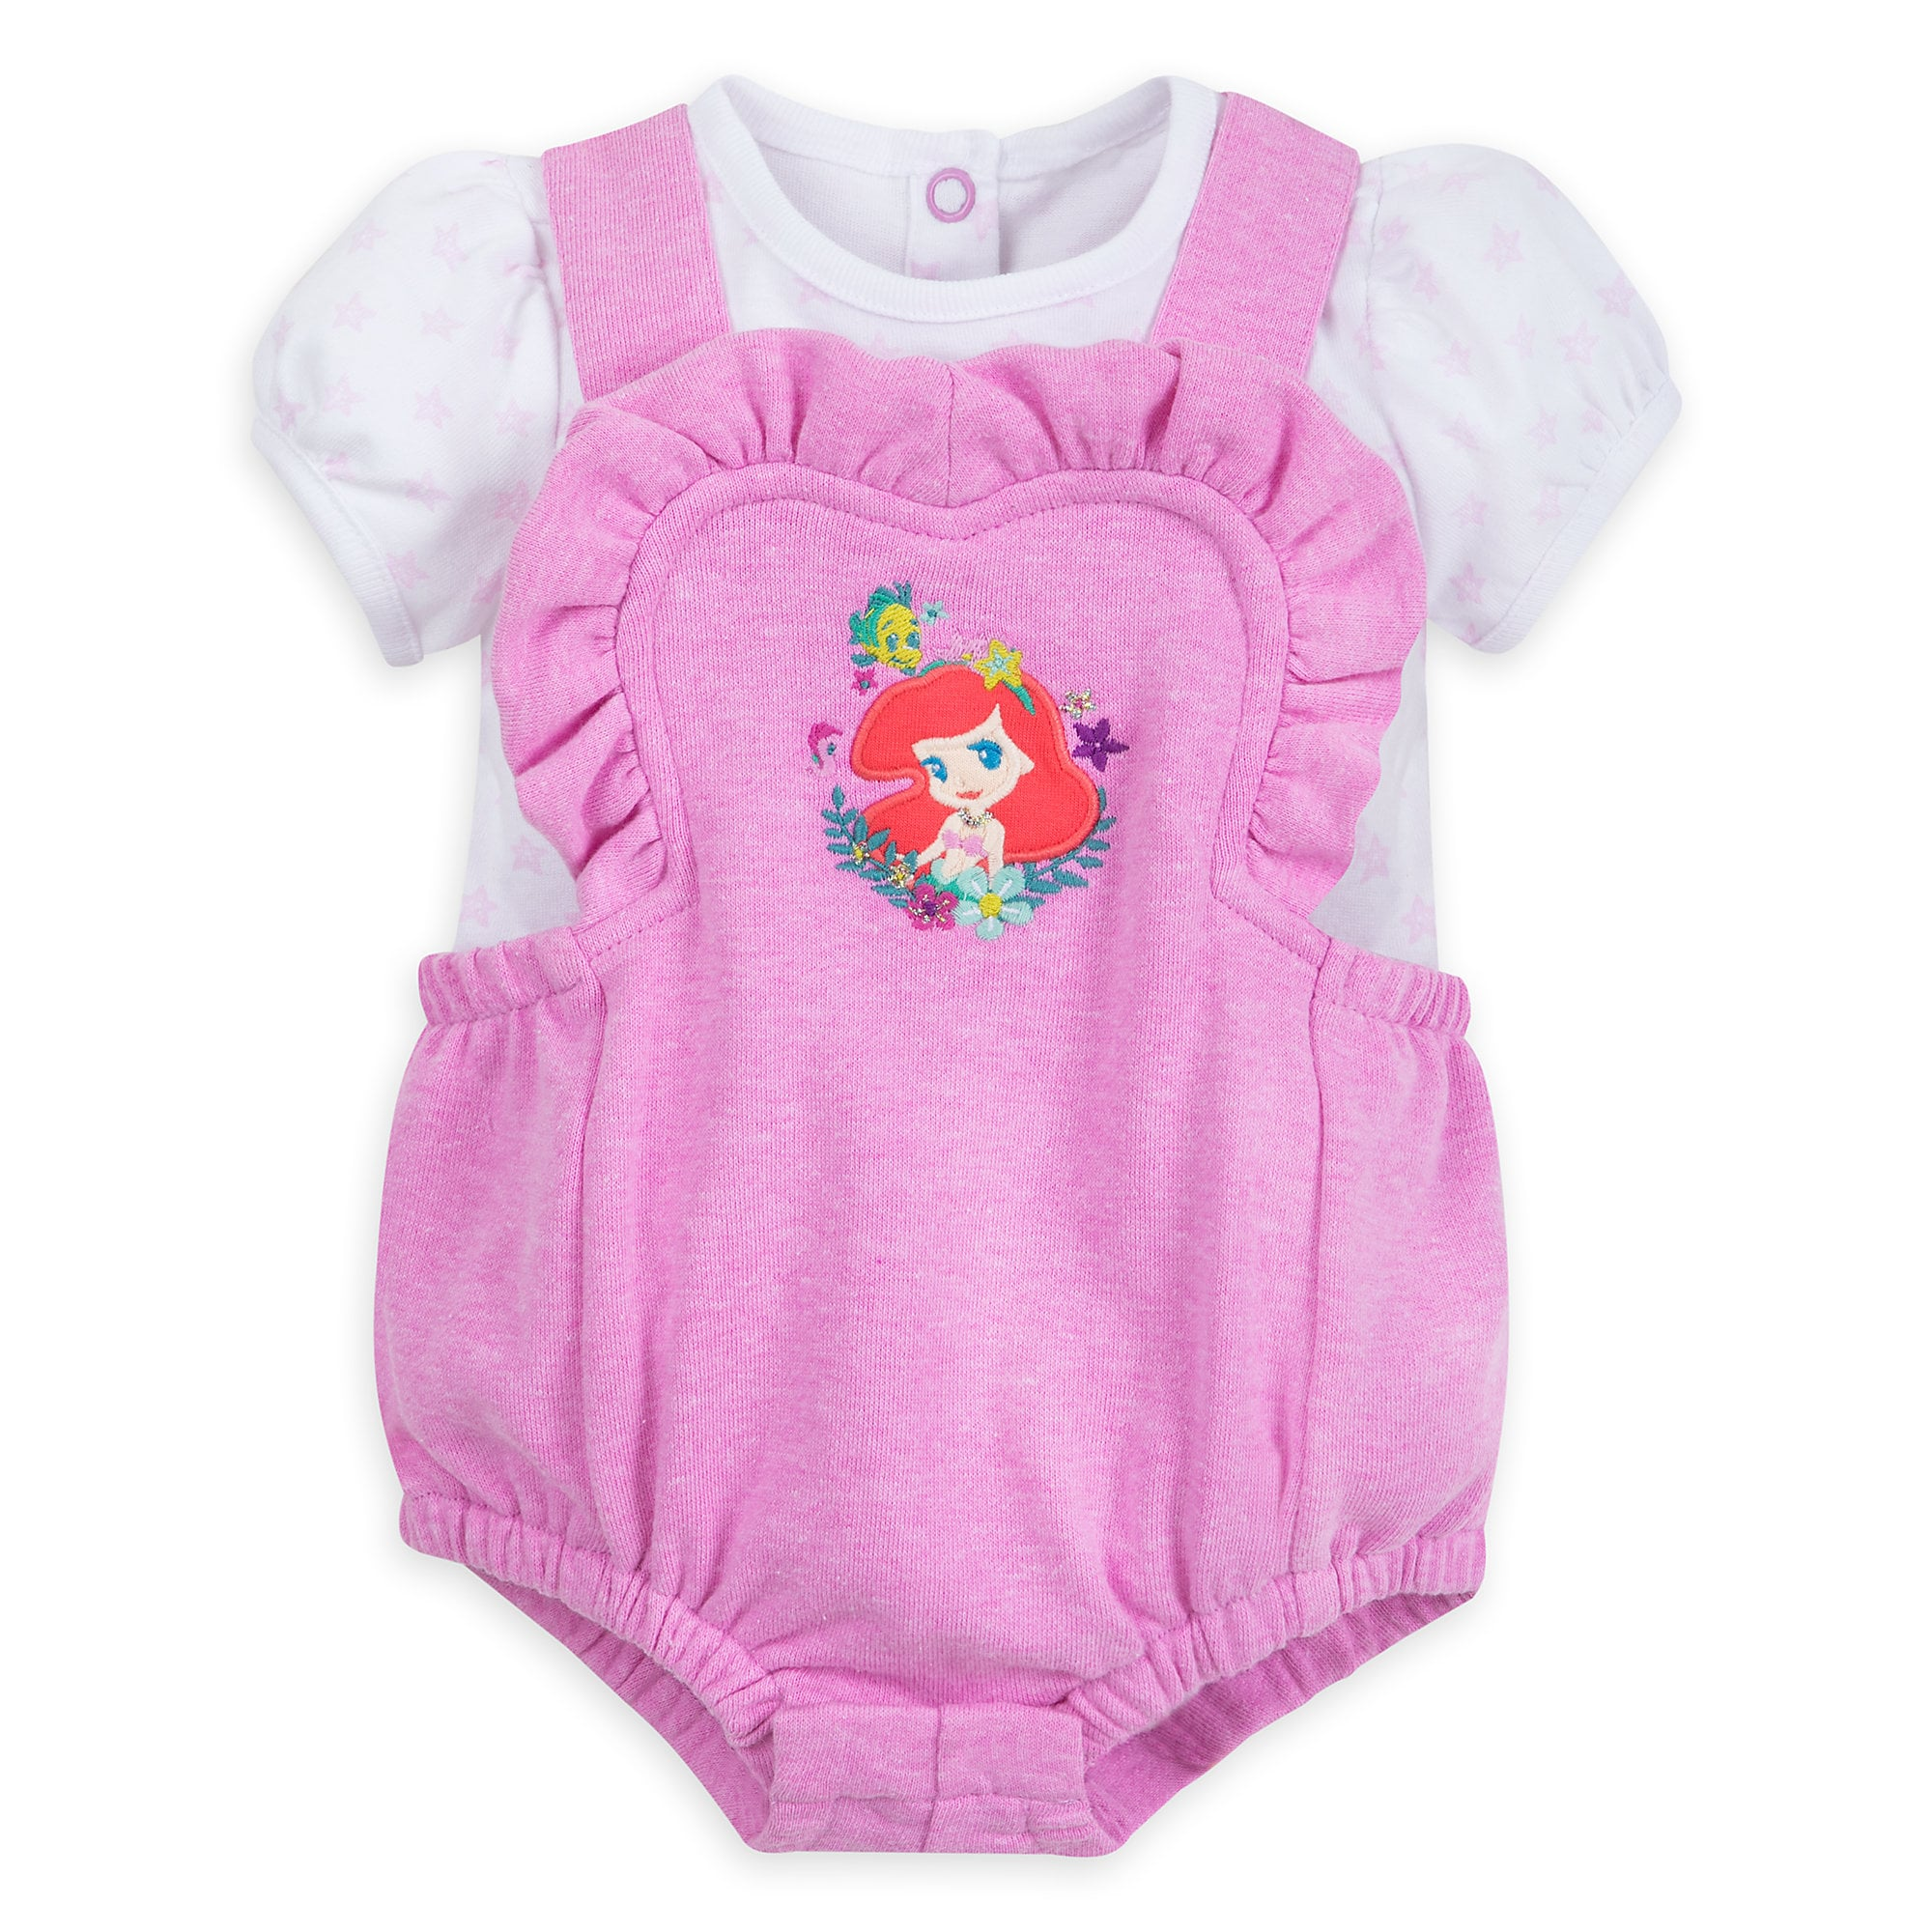 Ariel Romper Set for Baby